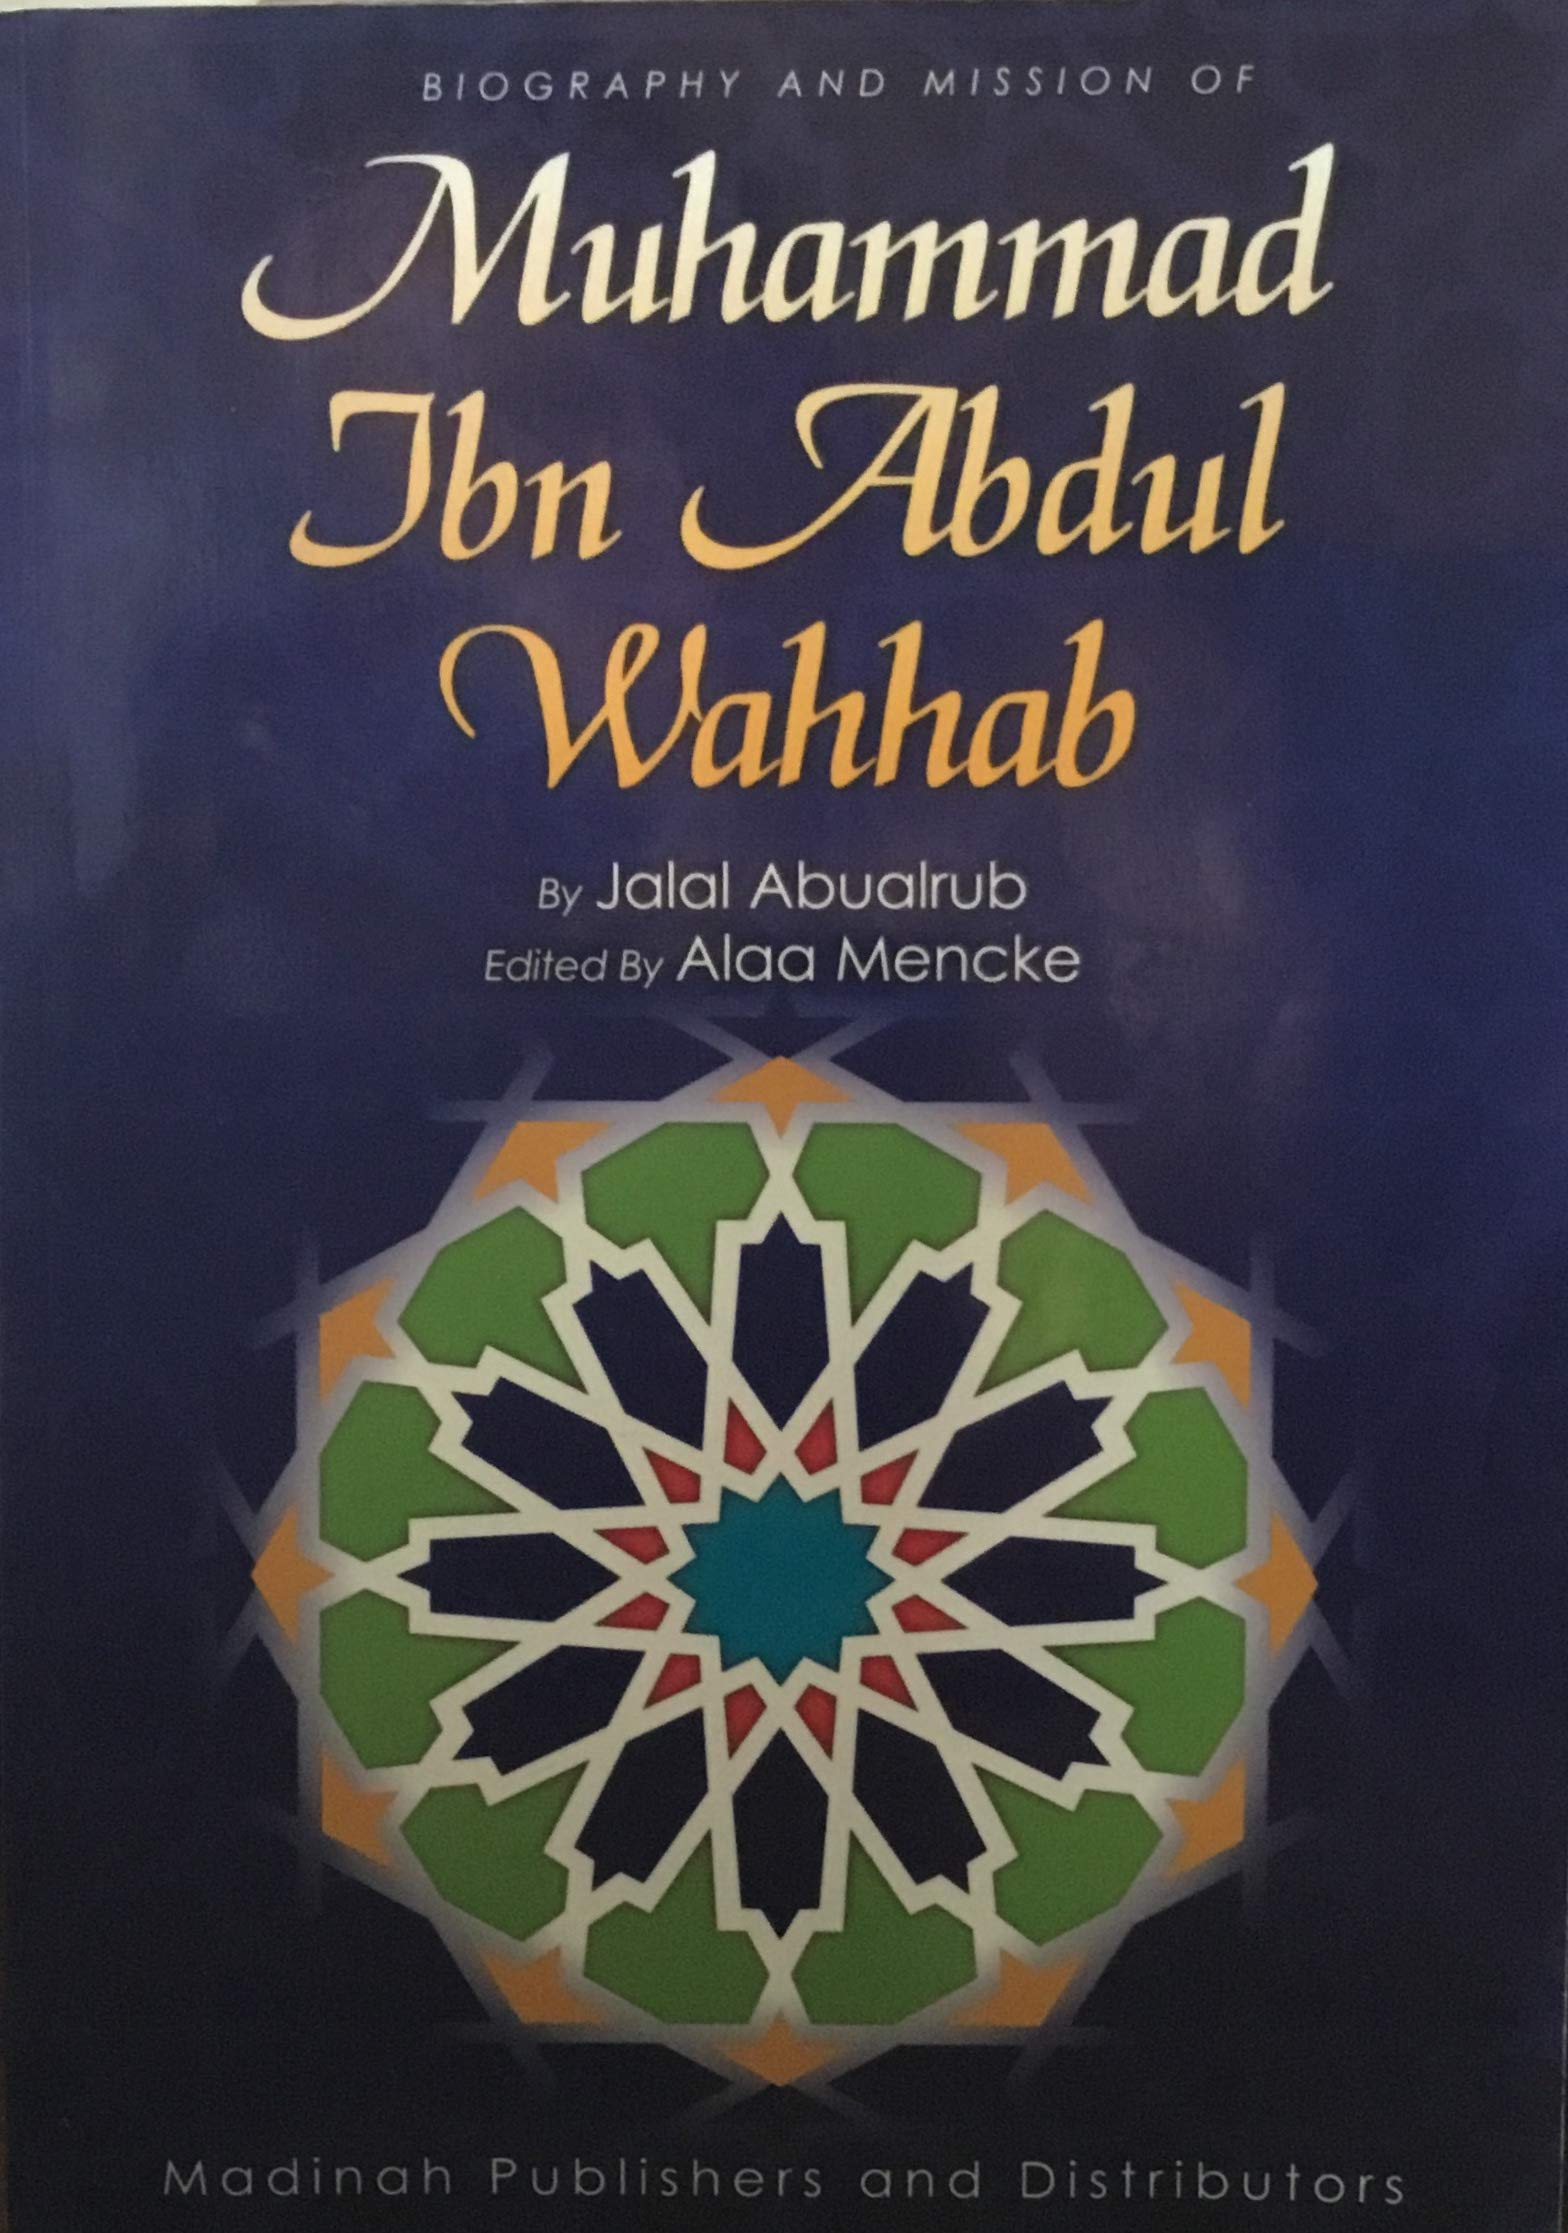 Biography And Mission Of Muhammad Ibn Abdul Wahhab Paperback 2003